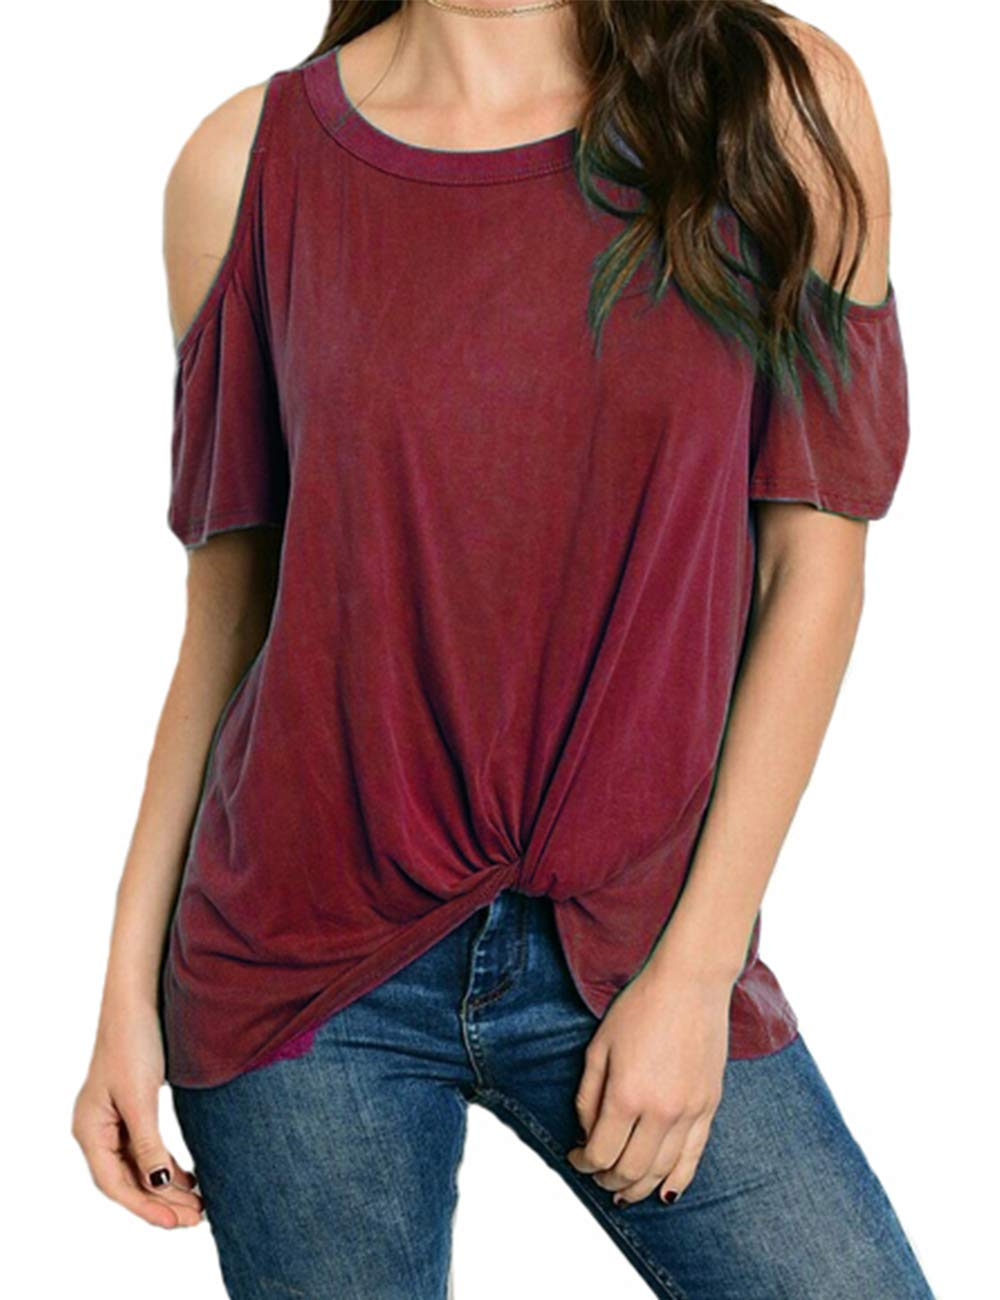 Eanklosco Women's Cold Shoulder Shirt Casual Short Sleeve T-Shirt Summer Twist Knot Front Tunic Tops (M, Wine Red)